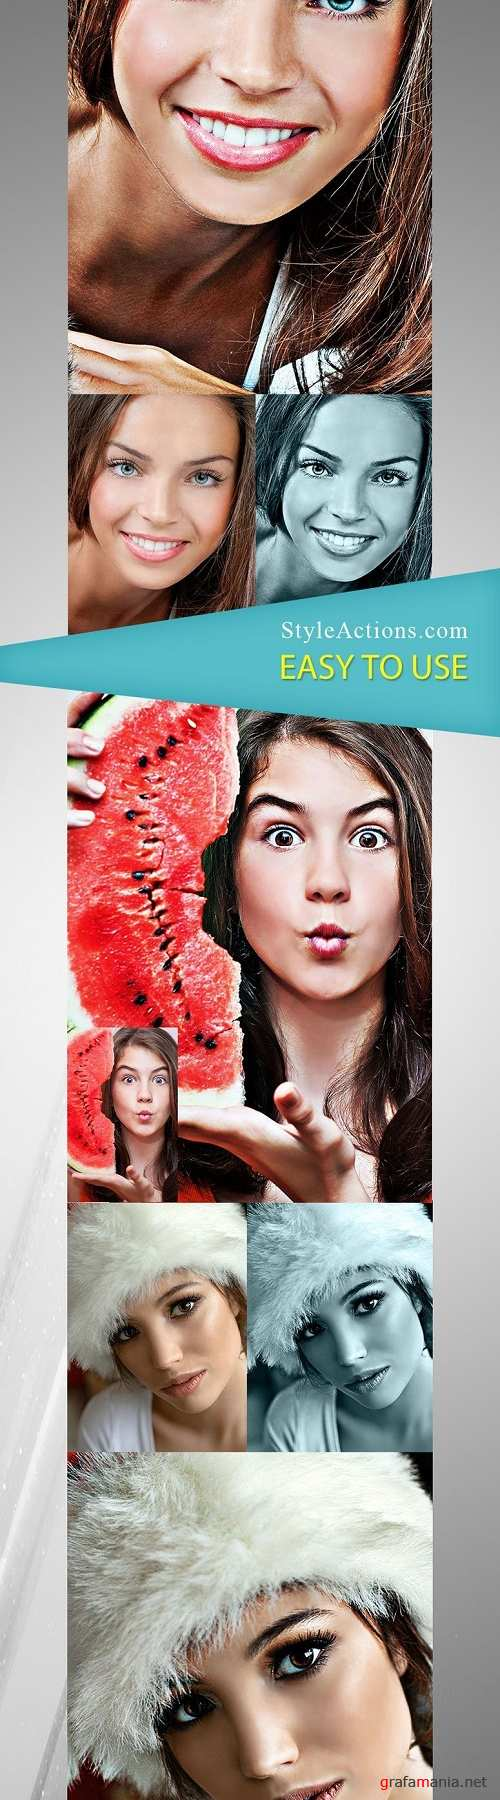 StyleActions - Retouch Photoshop Action